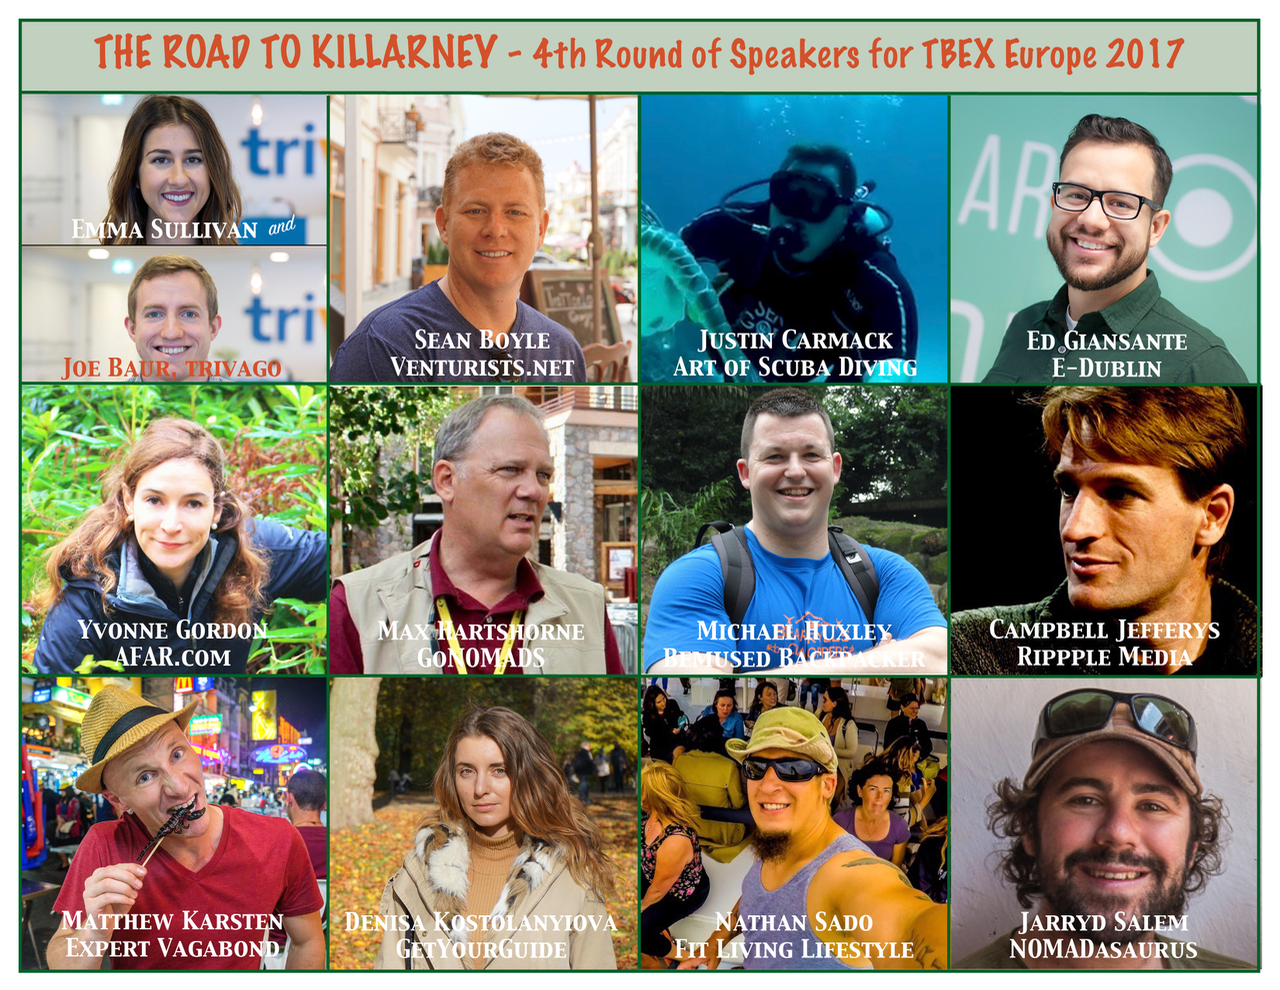 TBEX Europe 2017 4th Round of Speakers